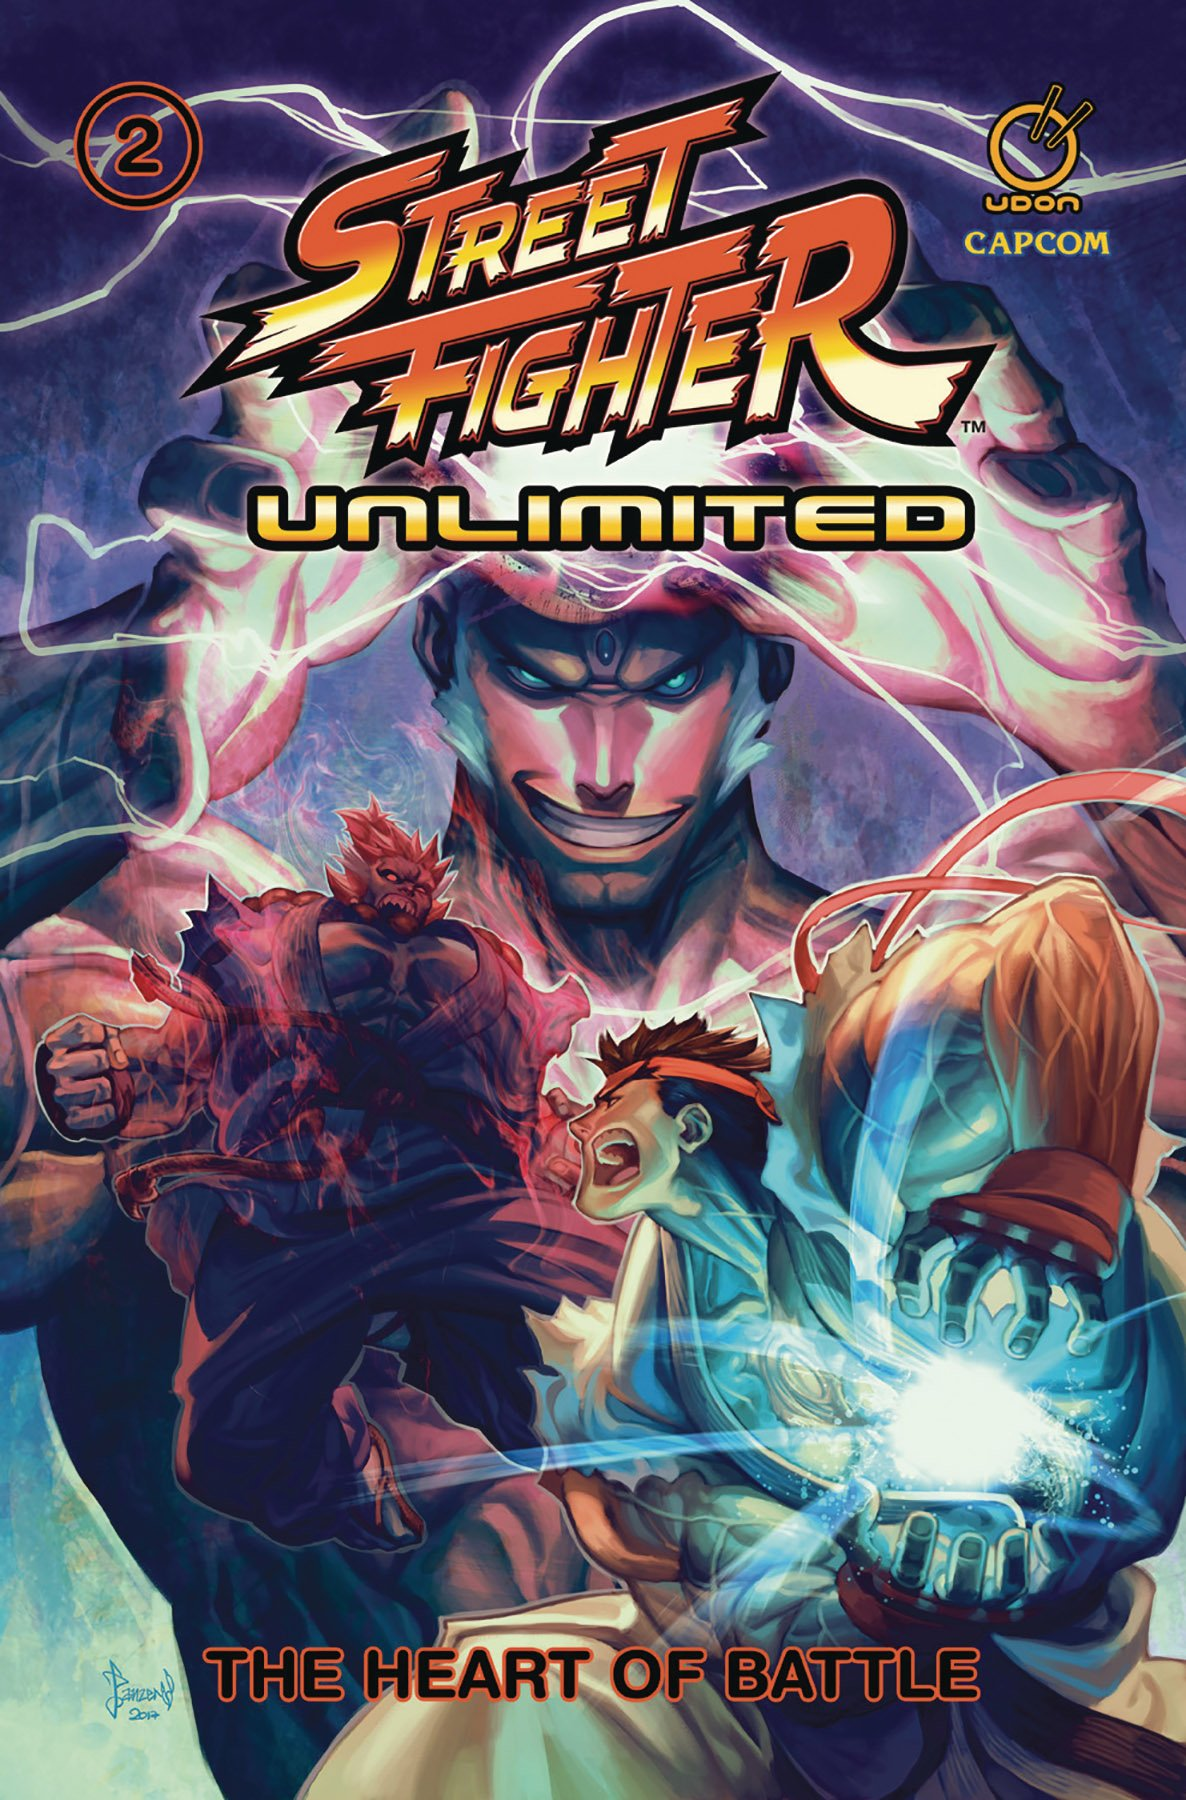 Street Fighter Unlimited TPB Vol.2 - The Heart of Battle